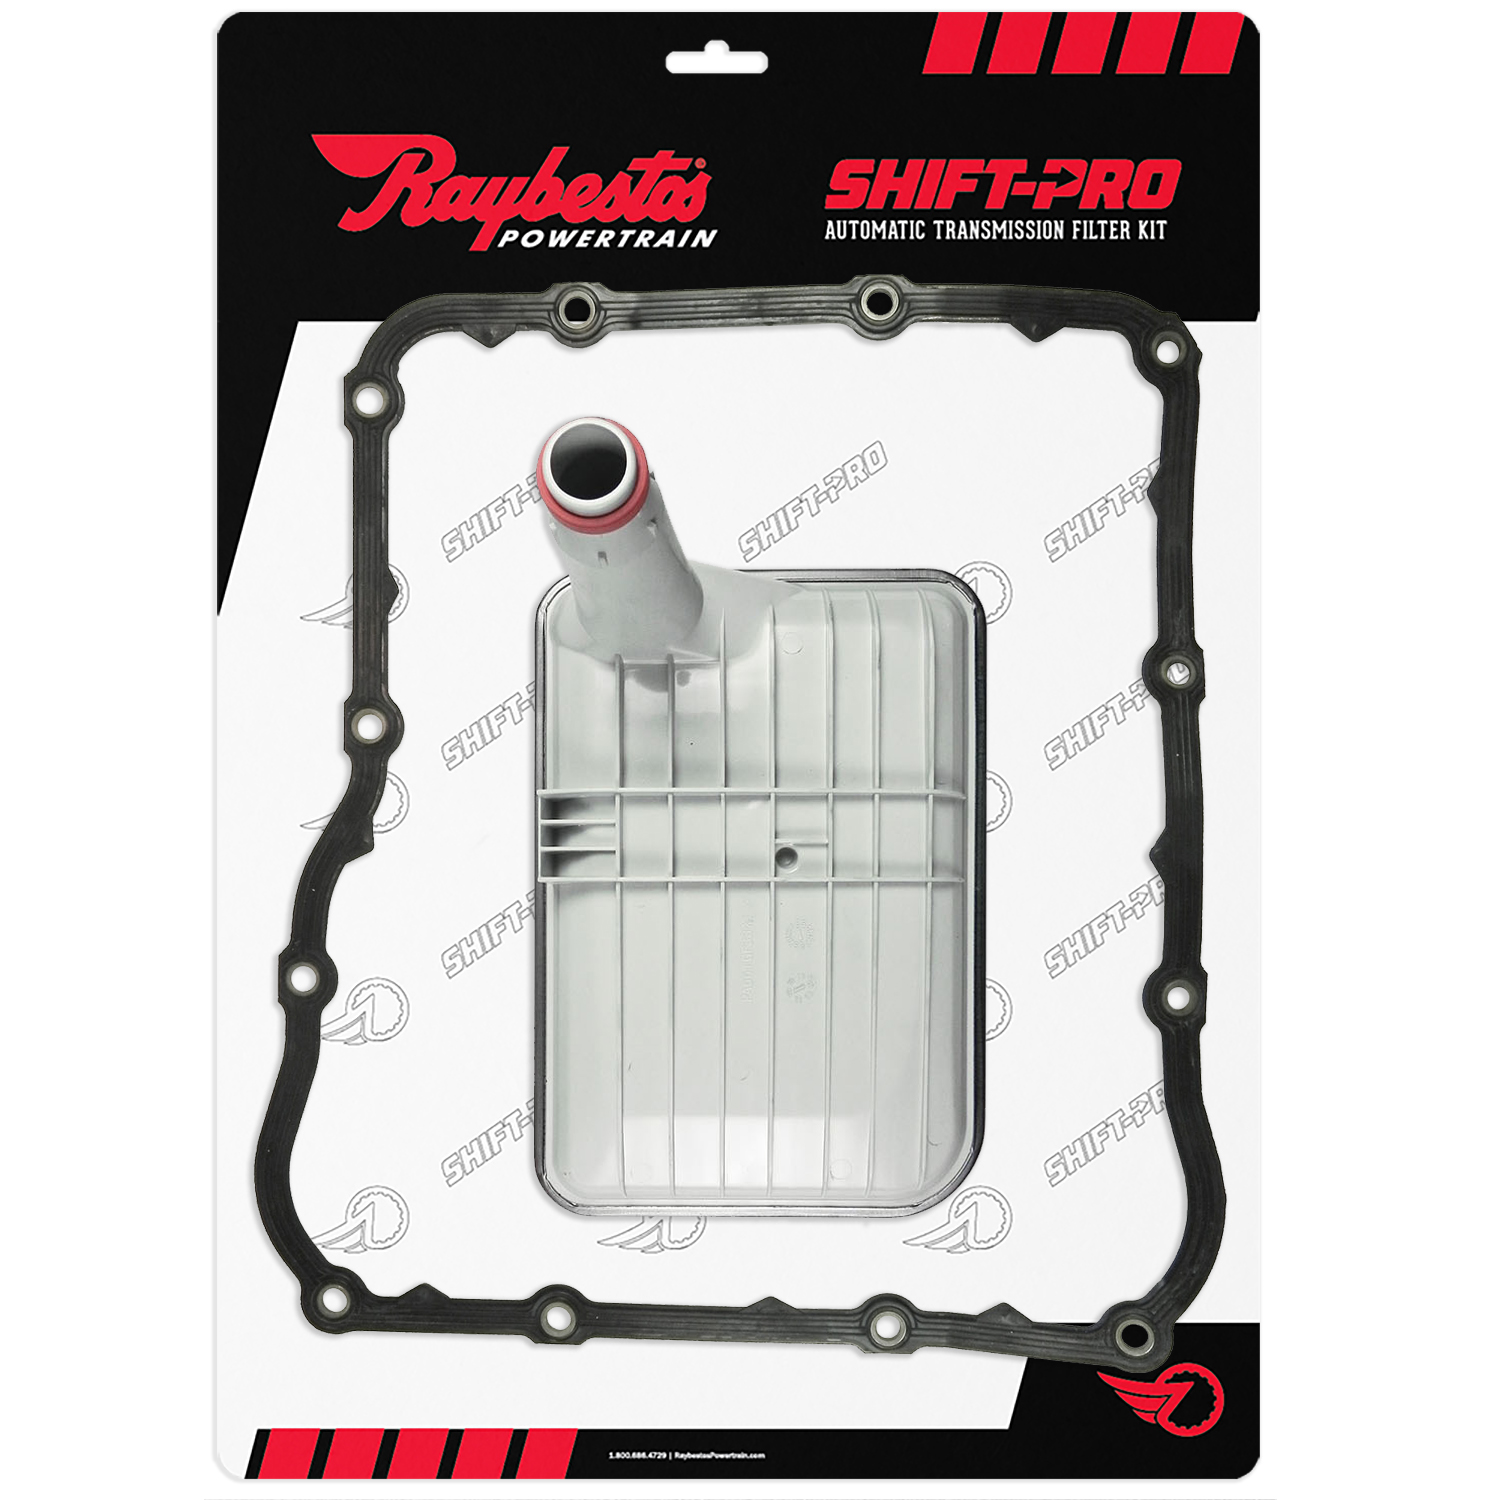 Raybestos Powertrain Shift-Pro premium transmission filter kits eliminate leaks and reduce overall labor time. Ideal for commercial and DIY projects, RPT shift-pro filter kits come complete with OEM-sytle filters and OEM-style, re-usable transmission pan gaskets and are available for many automatic transmission applications including 6L80E, 6HP26, 6R140, 47RE, Allison 1000, and more.